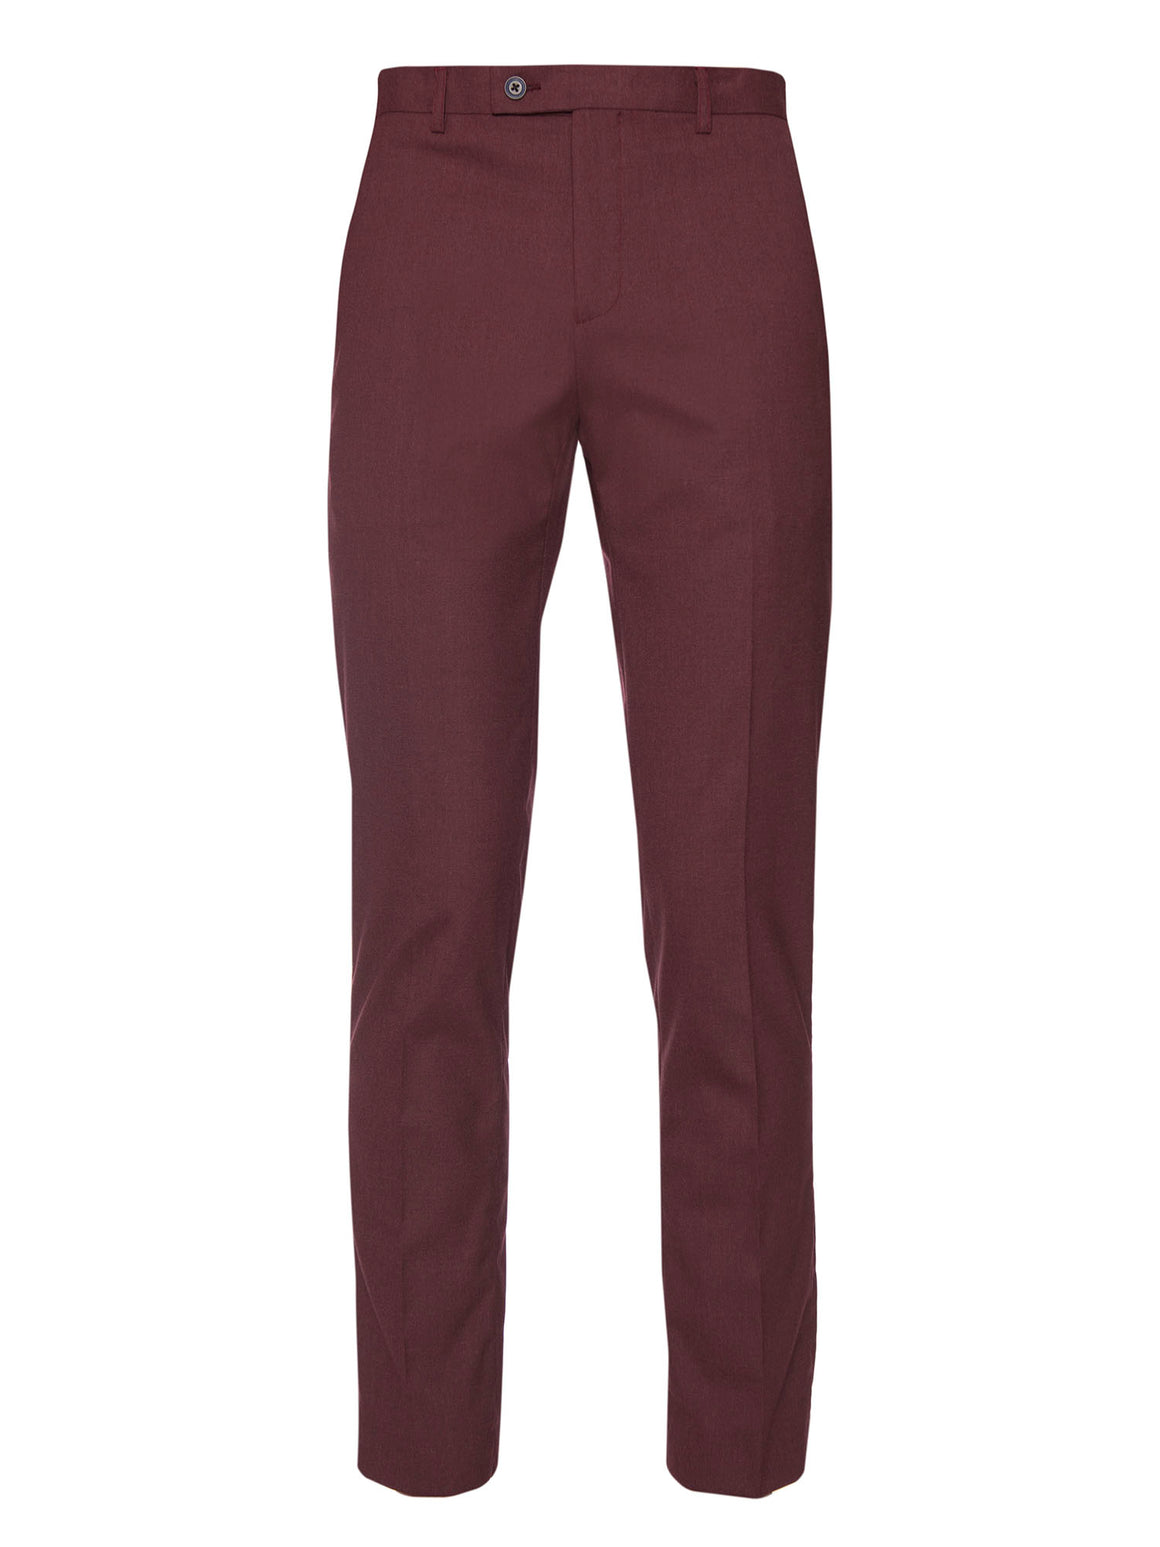 Downing Pant - Dark Berry